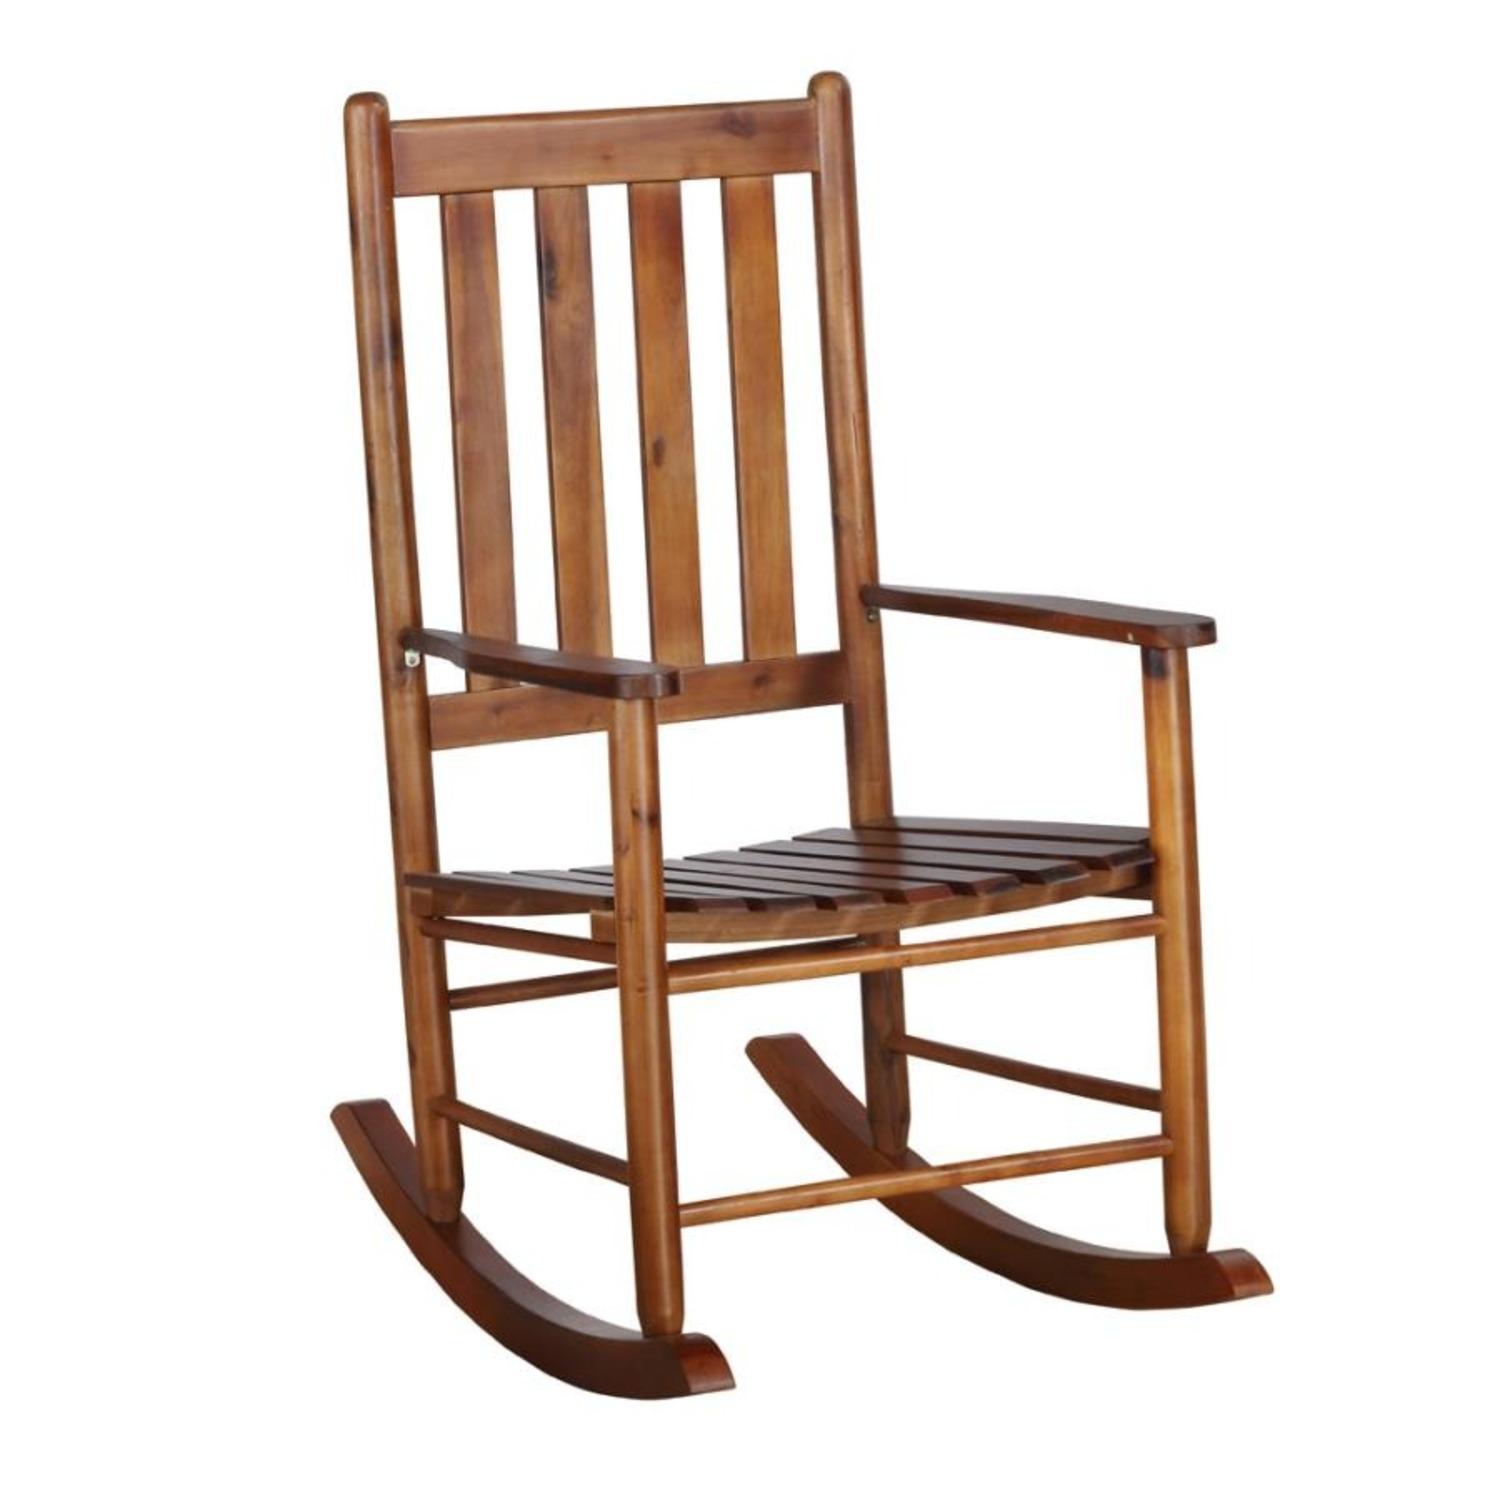 Rocking Chair In Golden Brown Acacia Wood Finish - image-0